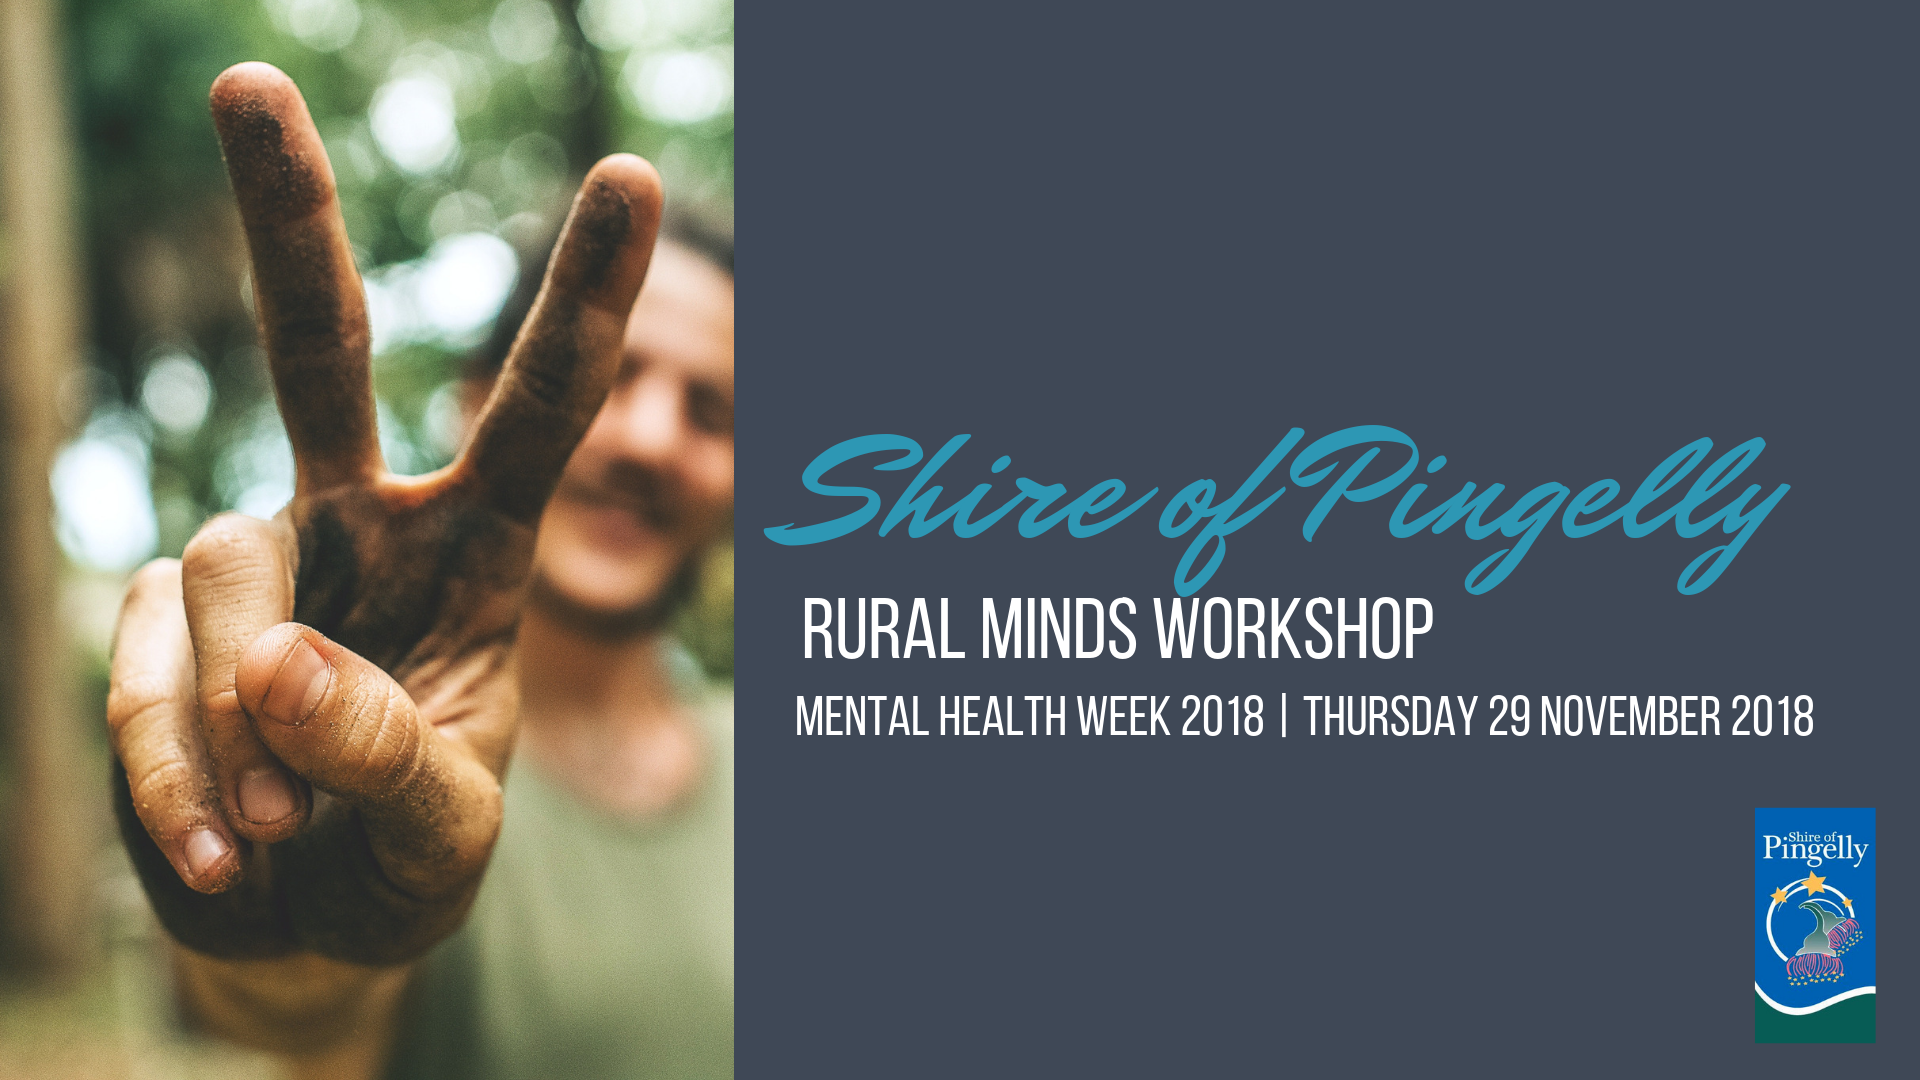 Shire of Pingelly, Rural Minds Workshop